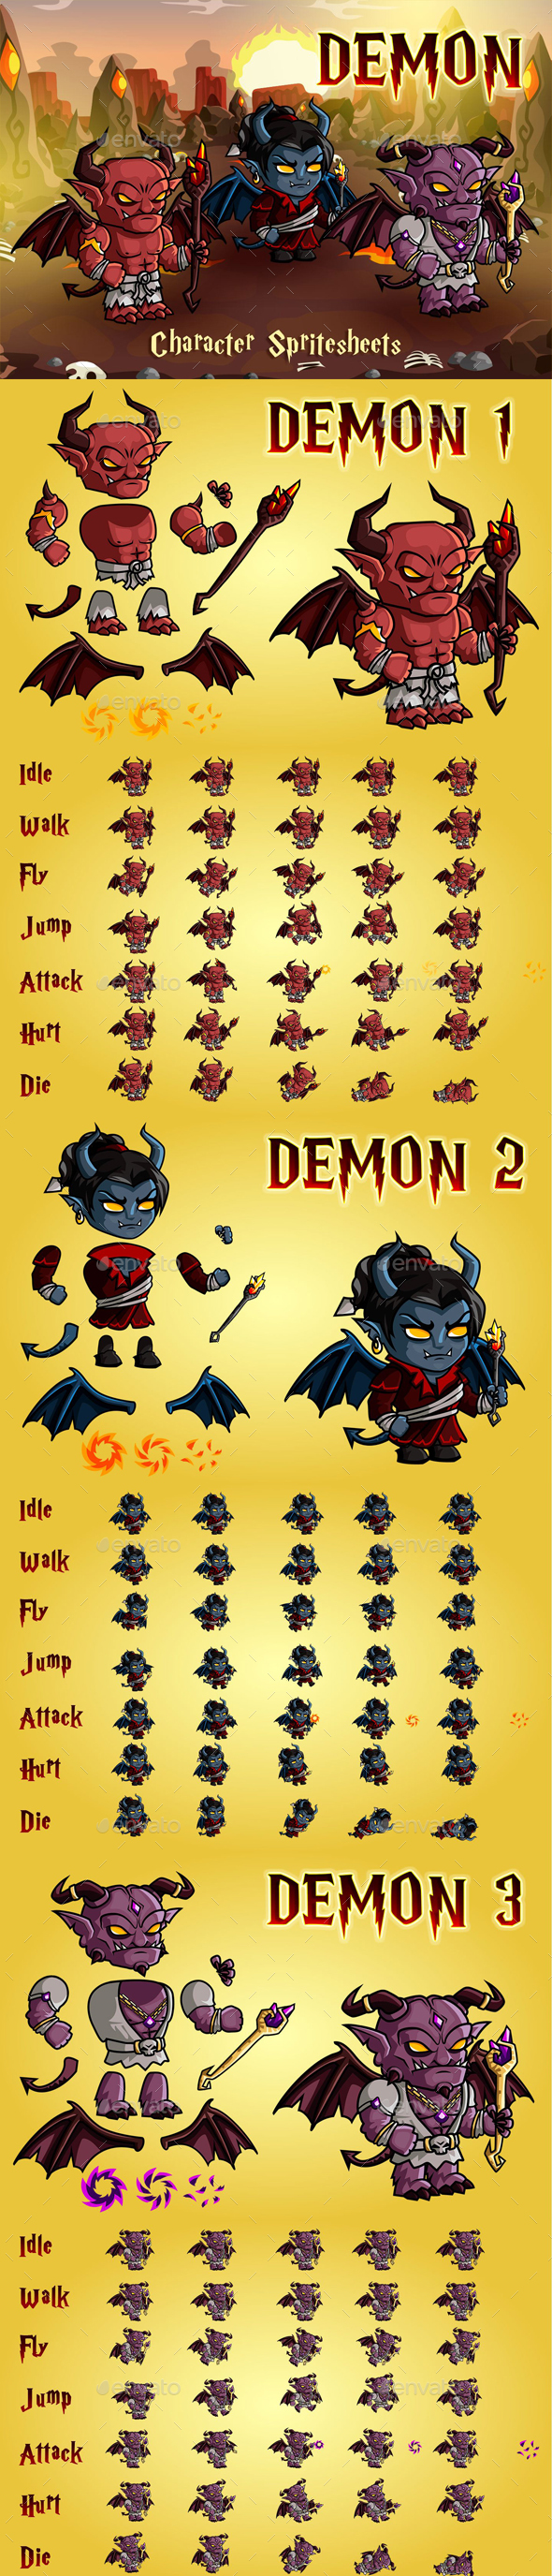 Demon 2D Game Character Sprite Sheet - Sprites Game Assets